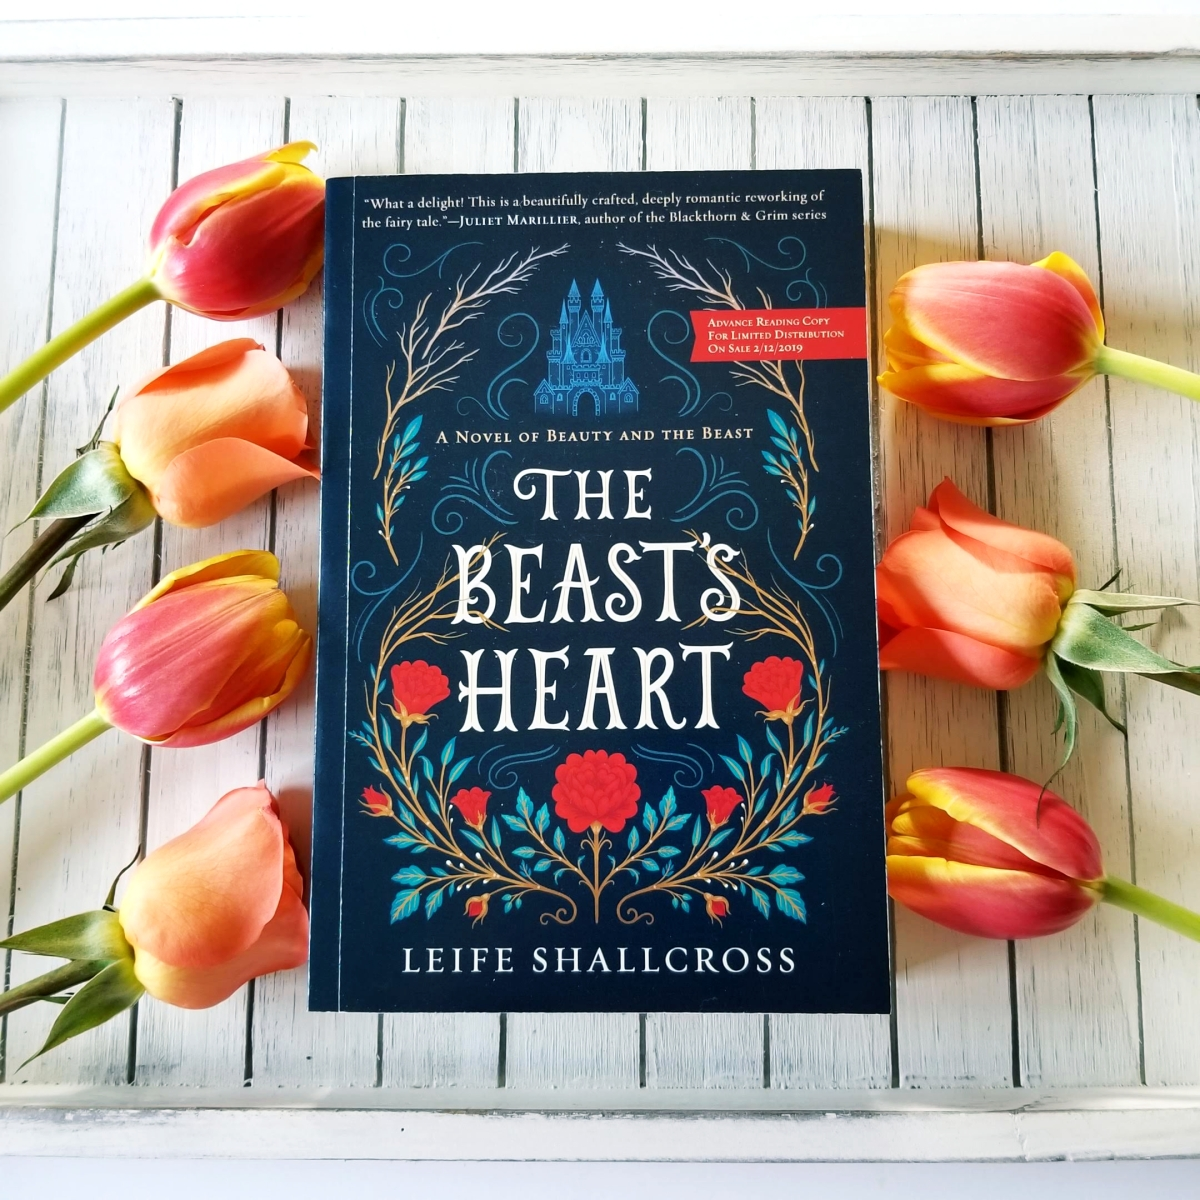 The Beast's Heart by Leife Shallcross #bookreview #tarheelreader #thrbeastsheart @leioss @berkleypub #thebeastsheart #bookbestiesbeastsheart #bookbestieapproved